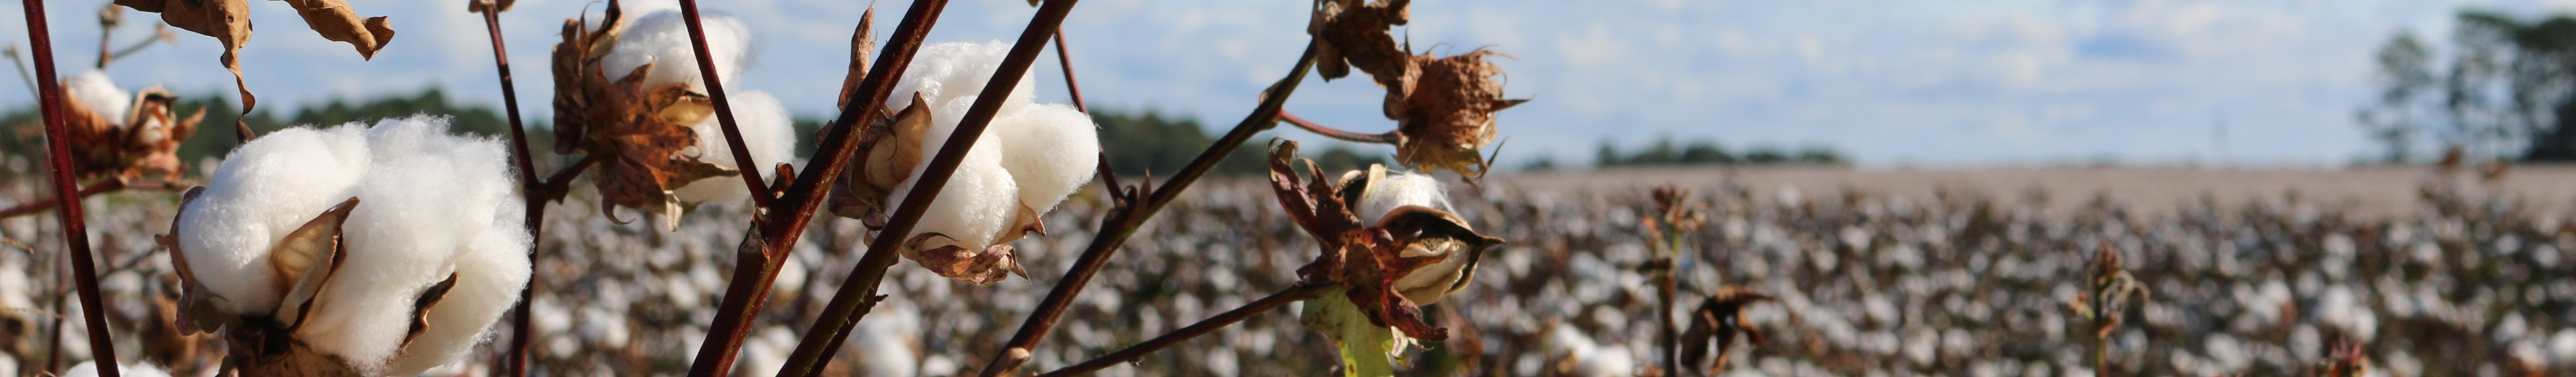 Organic Cotton Growing in the field for top Sustainable Living Tips